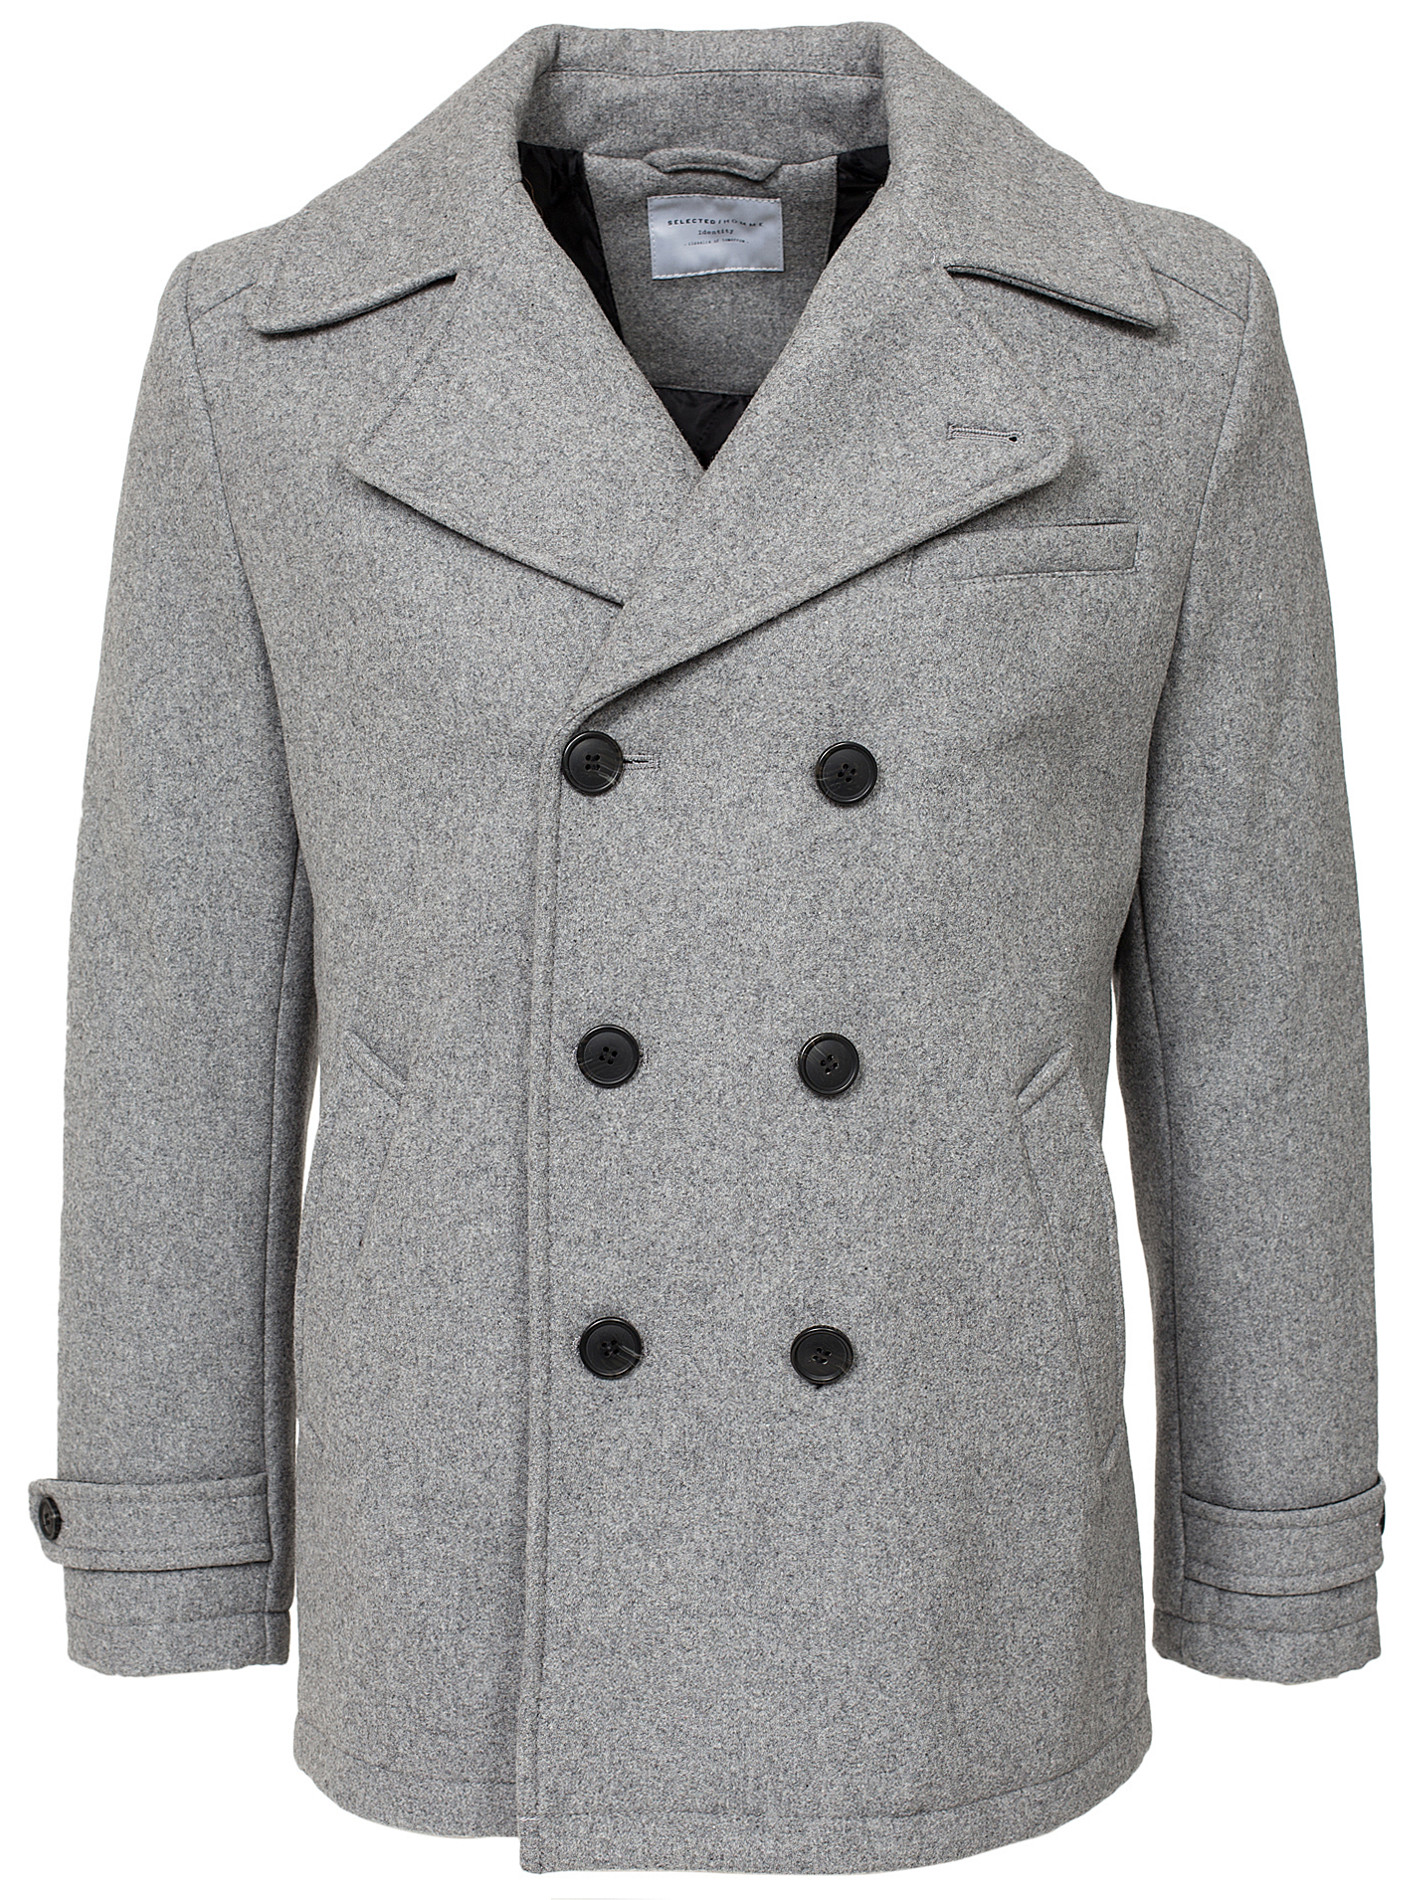 Selected Homme, 1095 kr